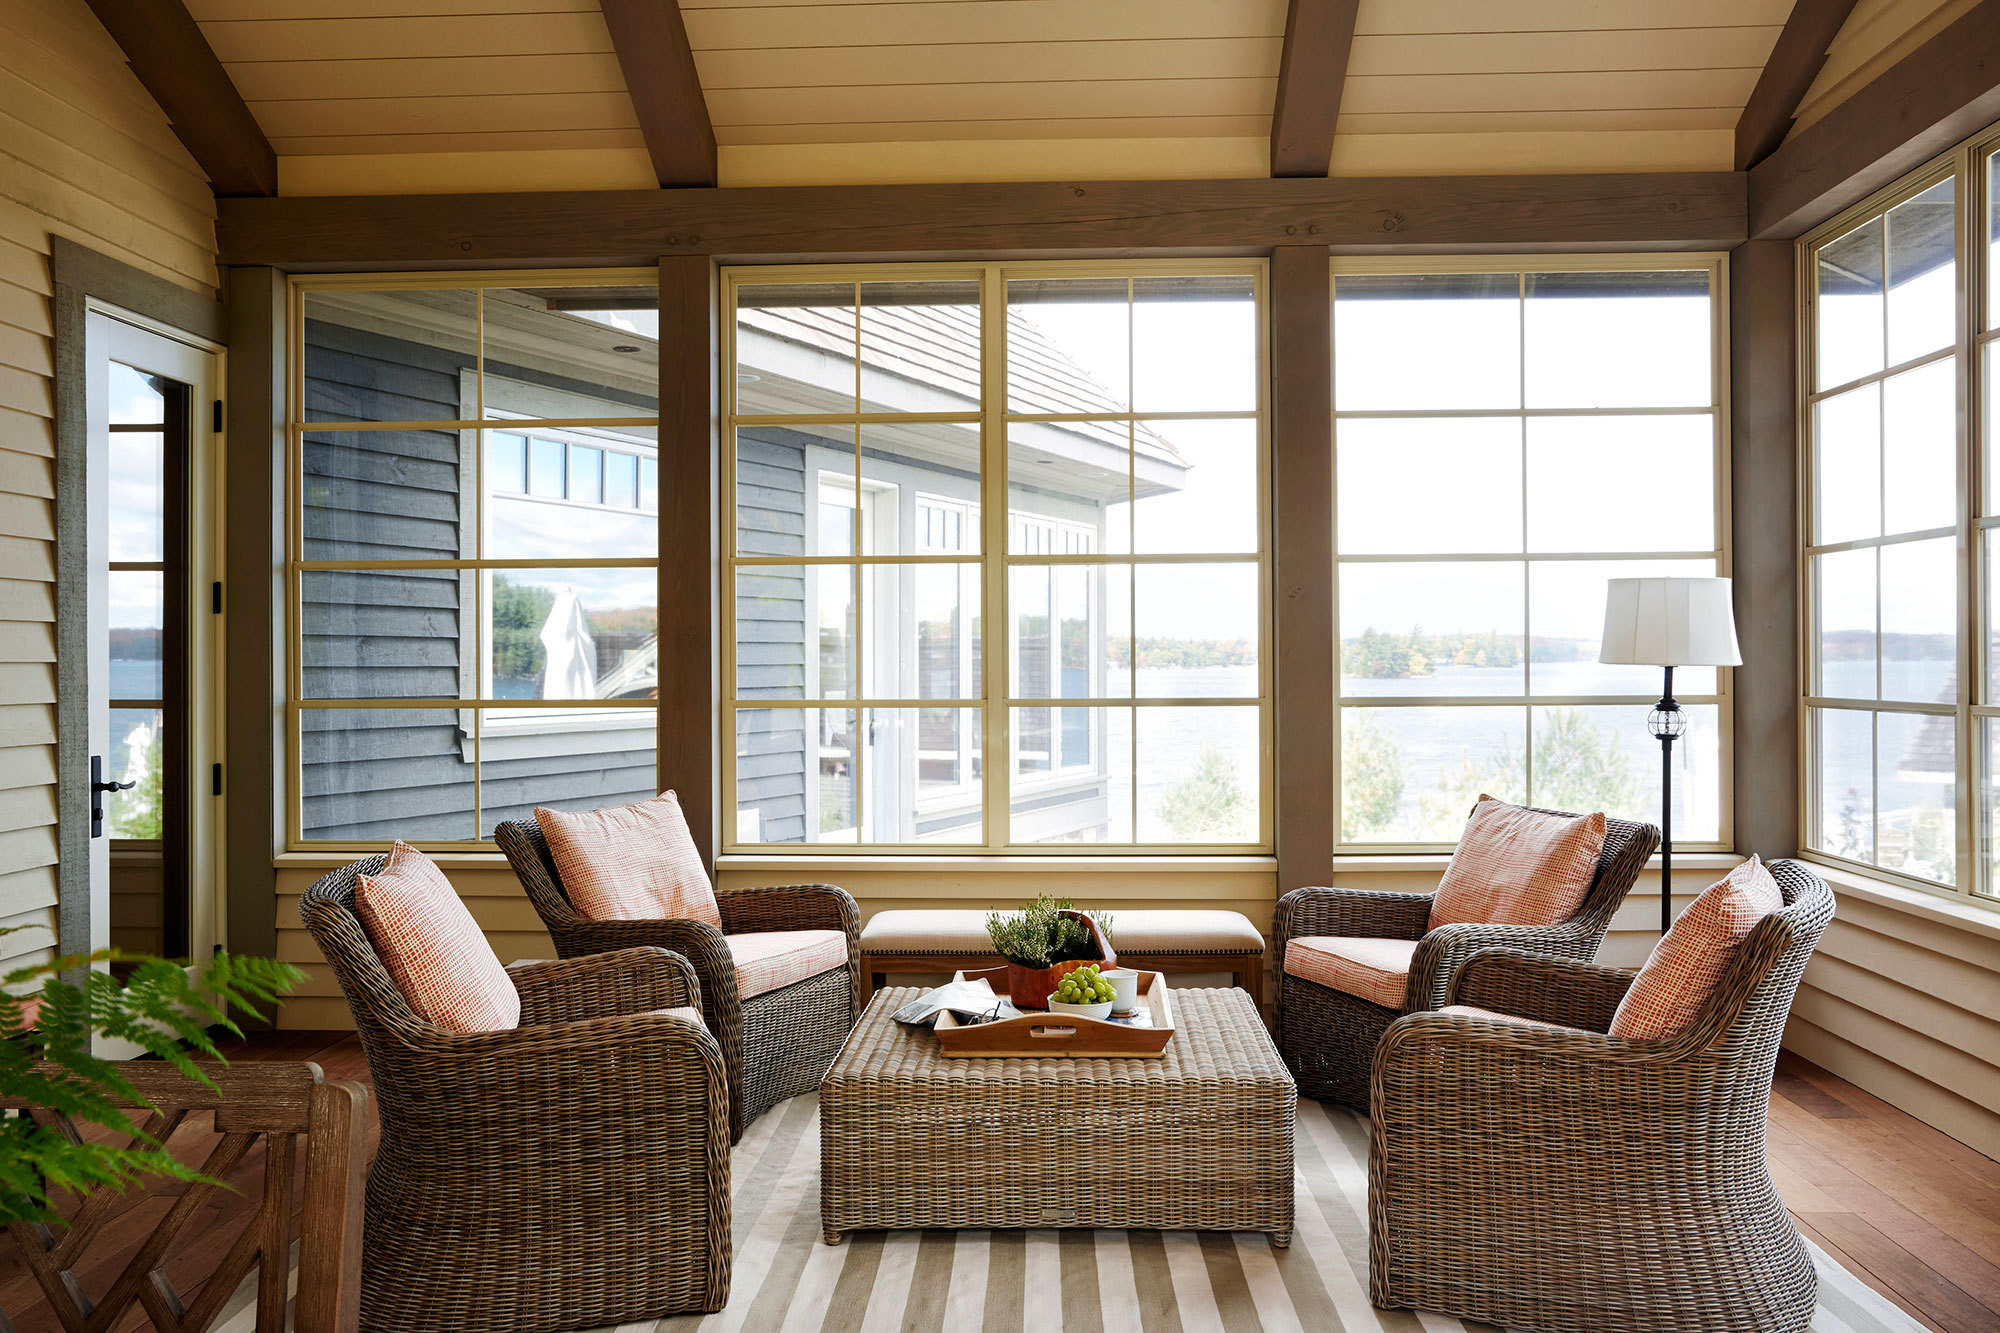 In The Three Season Muskoka Room Ipe Decking And Furniture Handwoven Wicker Make